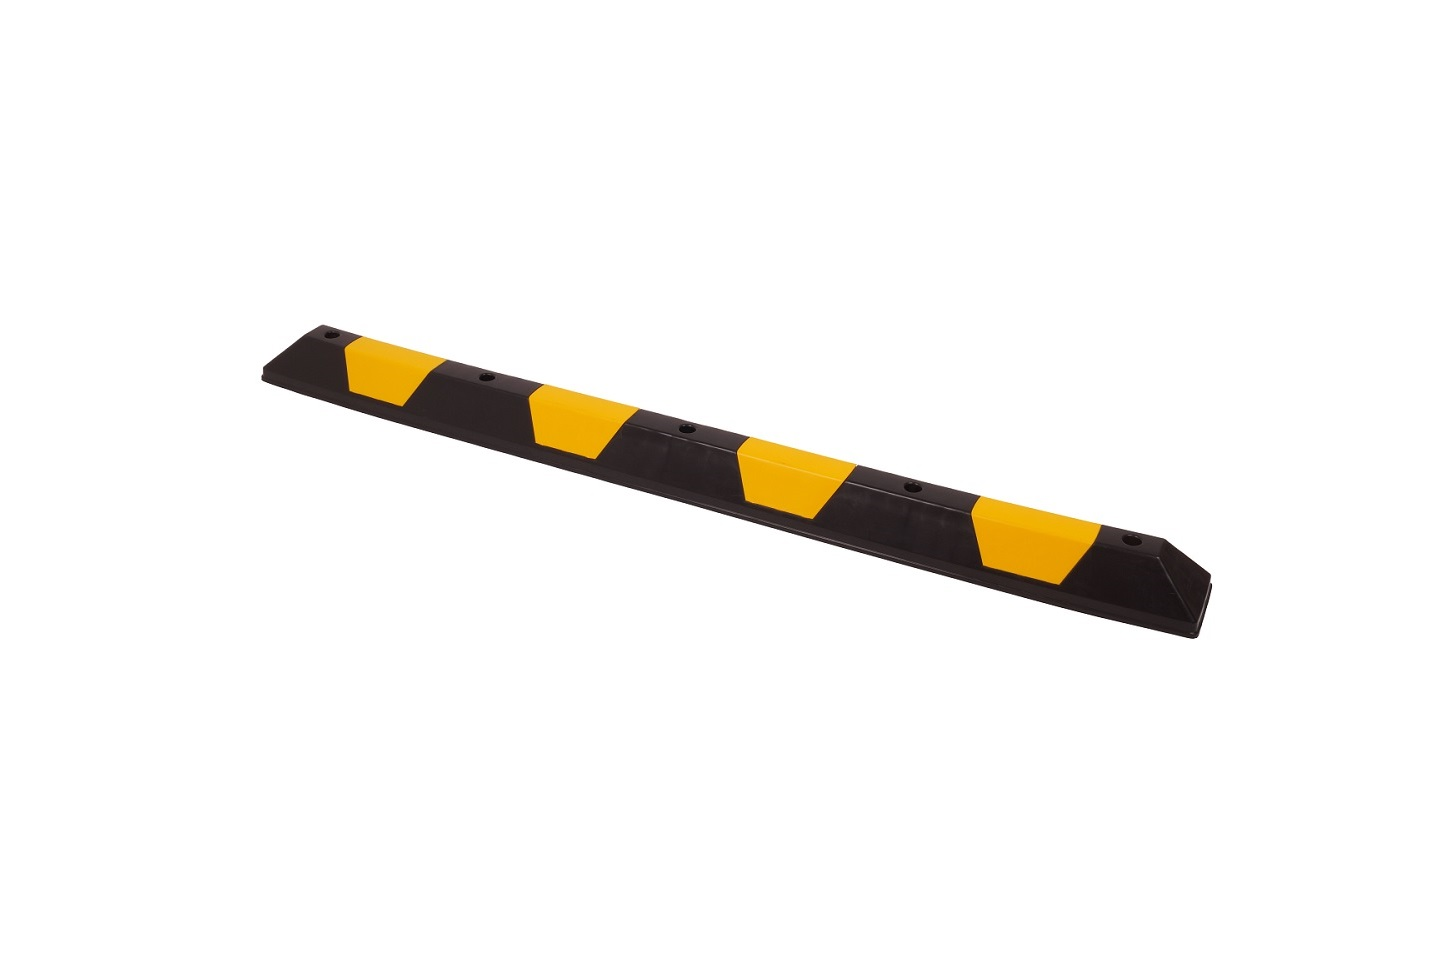 parking aid stop black-yellow 1790 mm